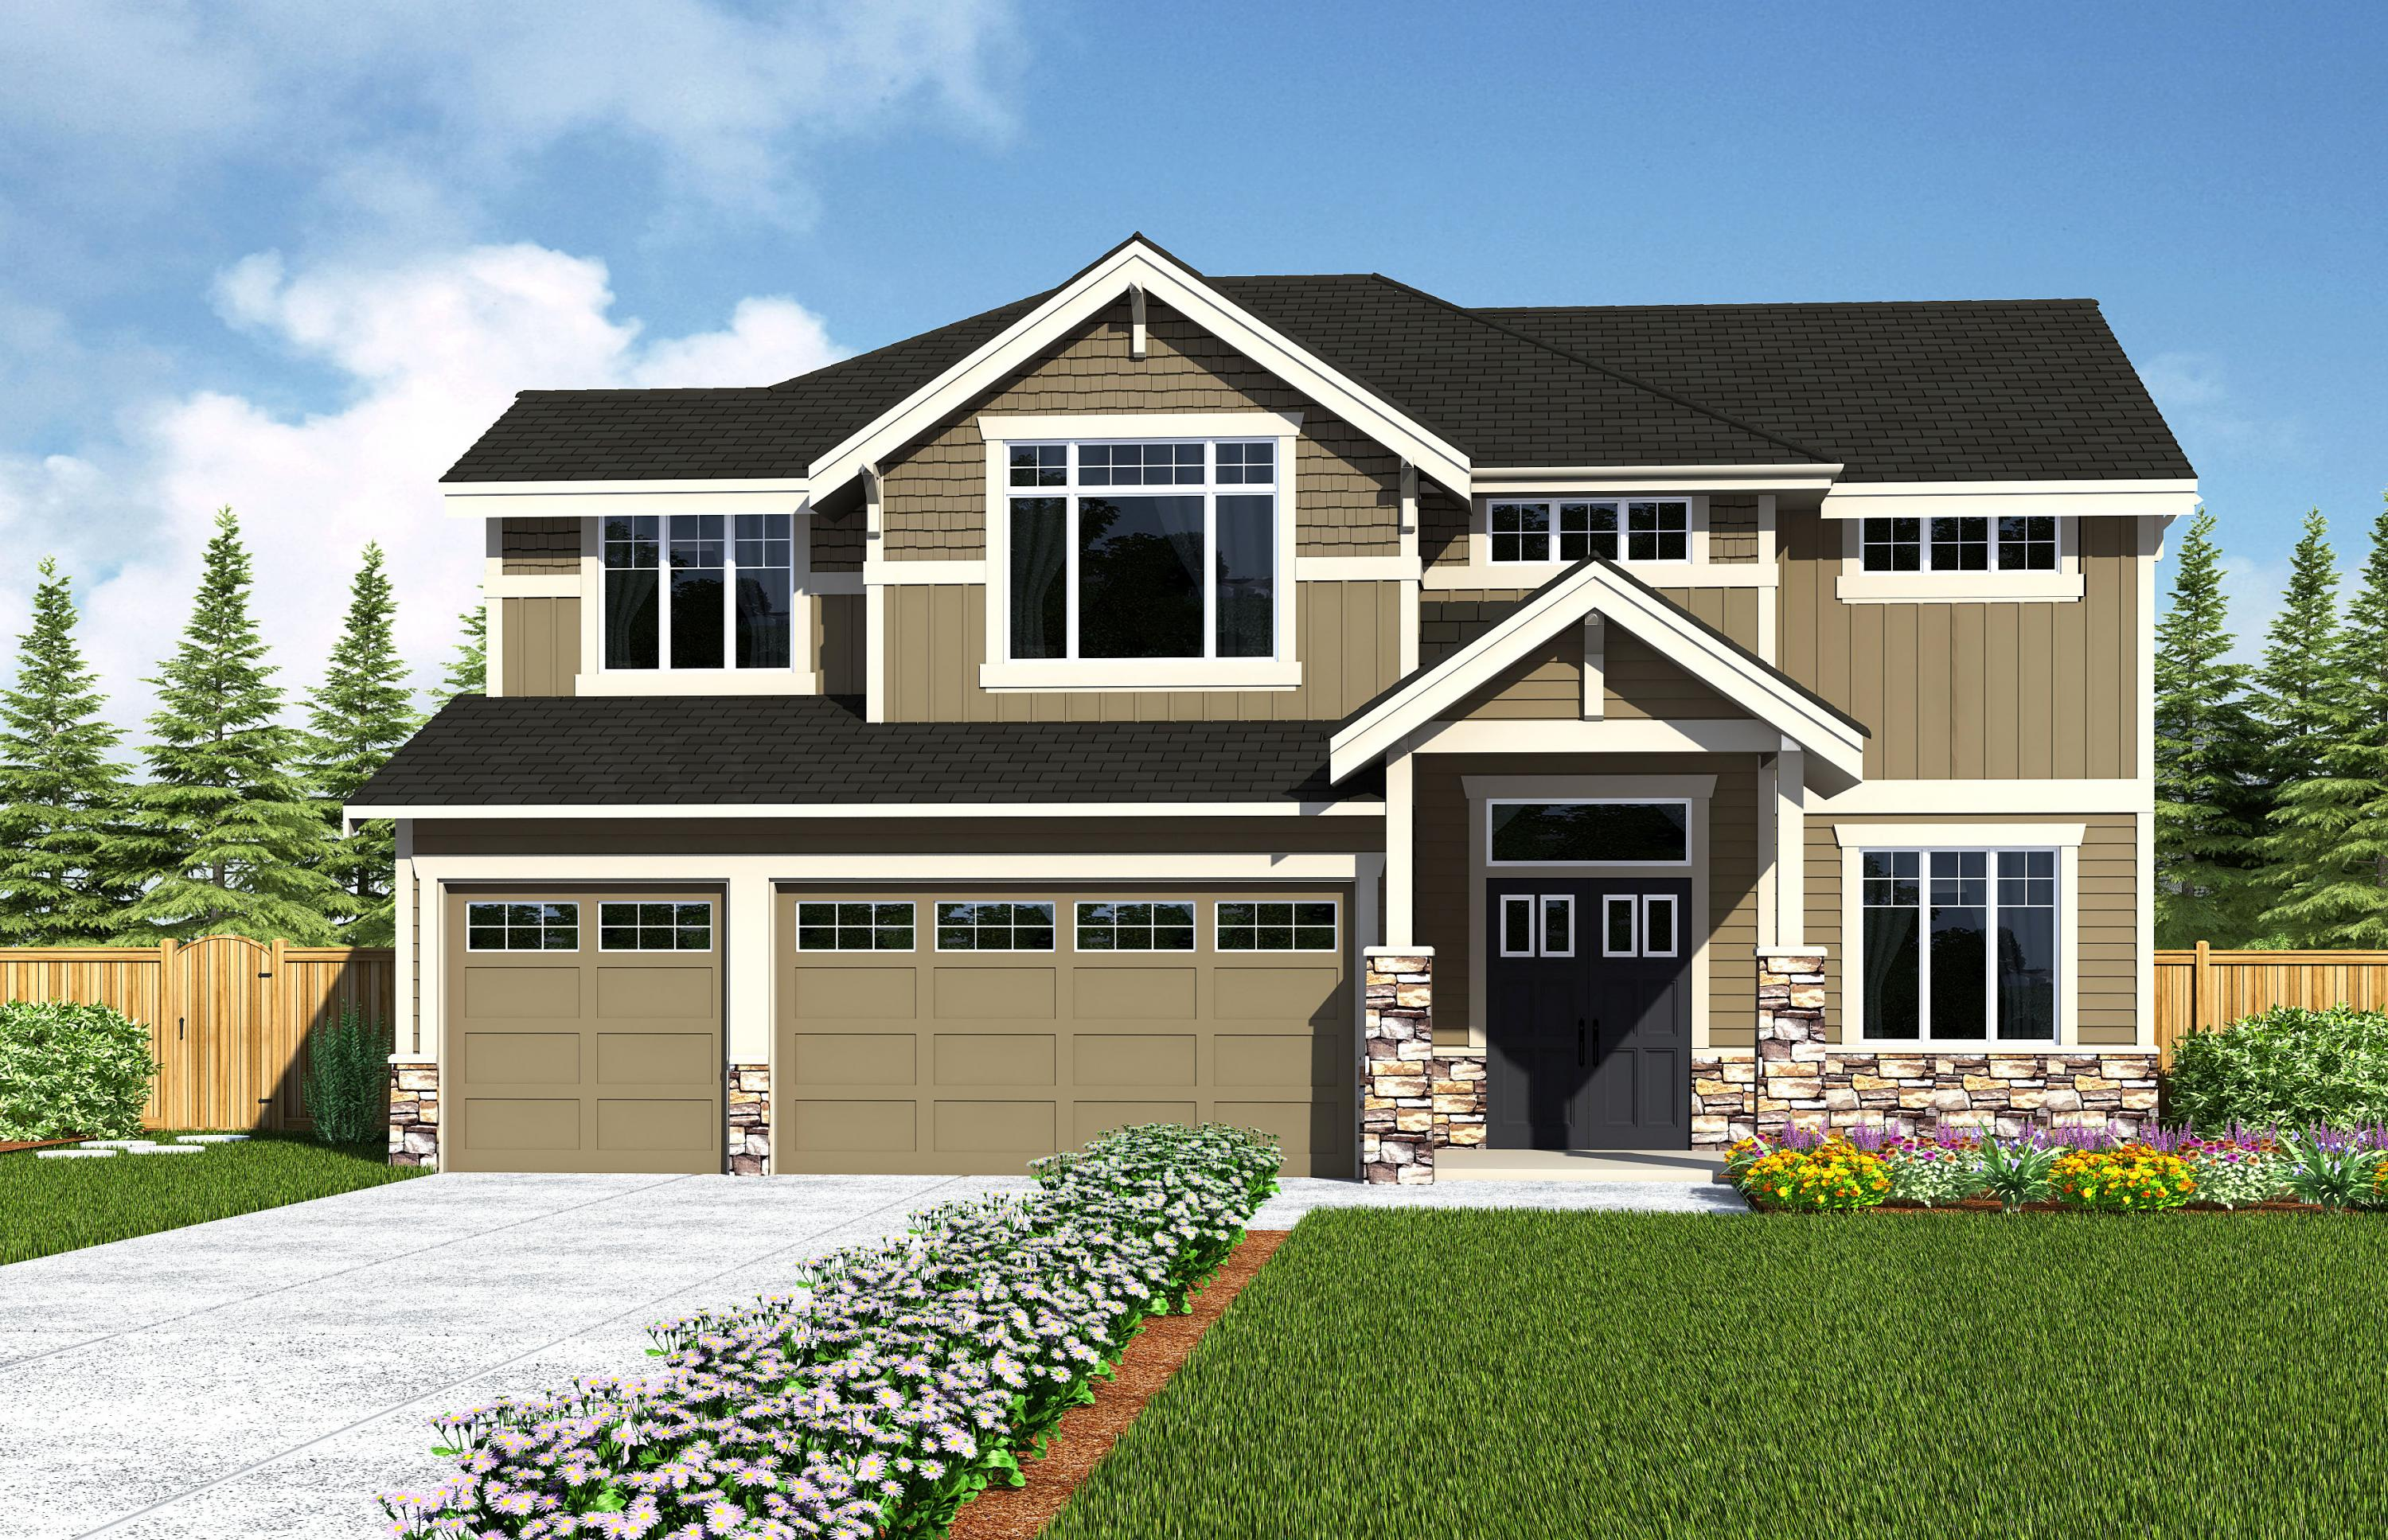 Pickering estates new homes in issaquah wa for New home builders in pickering